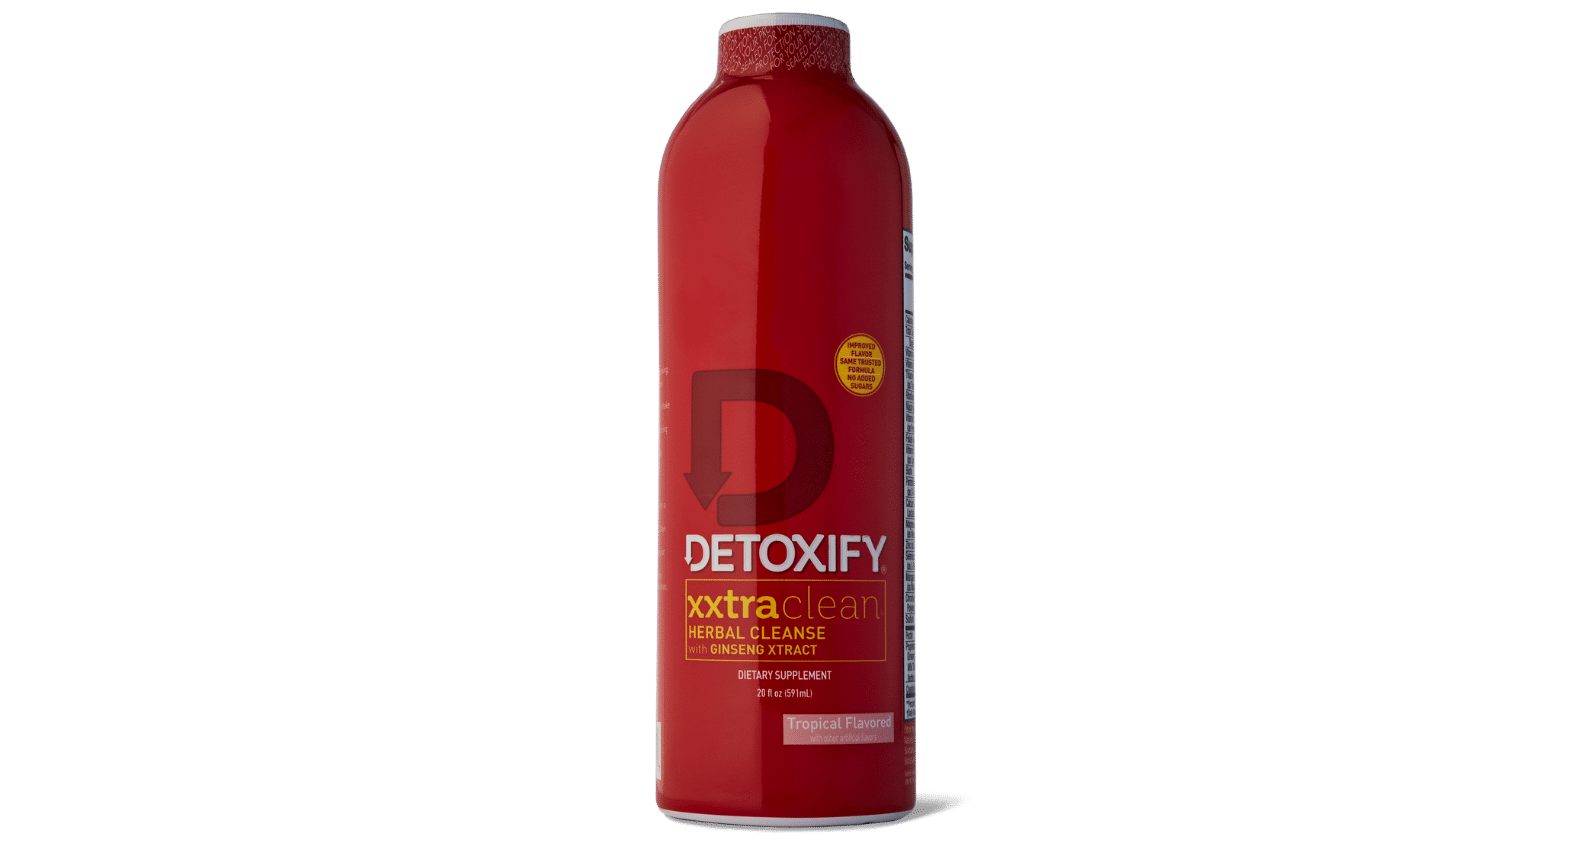 Detoxify XXtra Clean supports healthy, sustained energy, while reducing feelings of stress and improving mood.